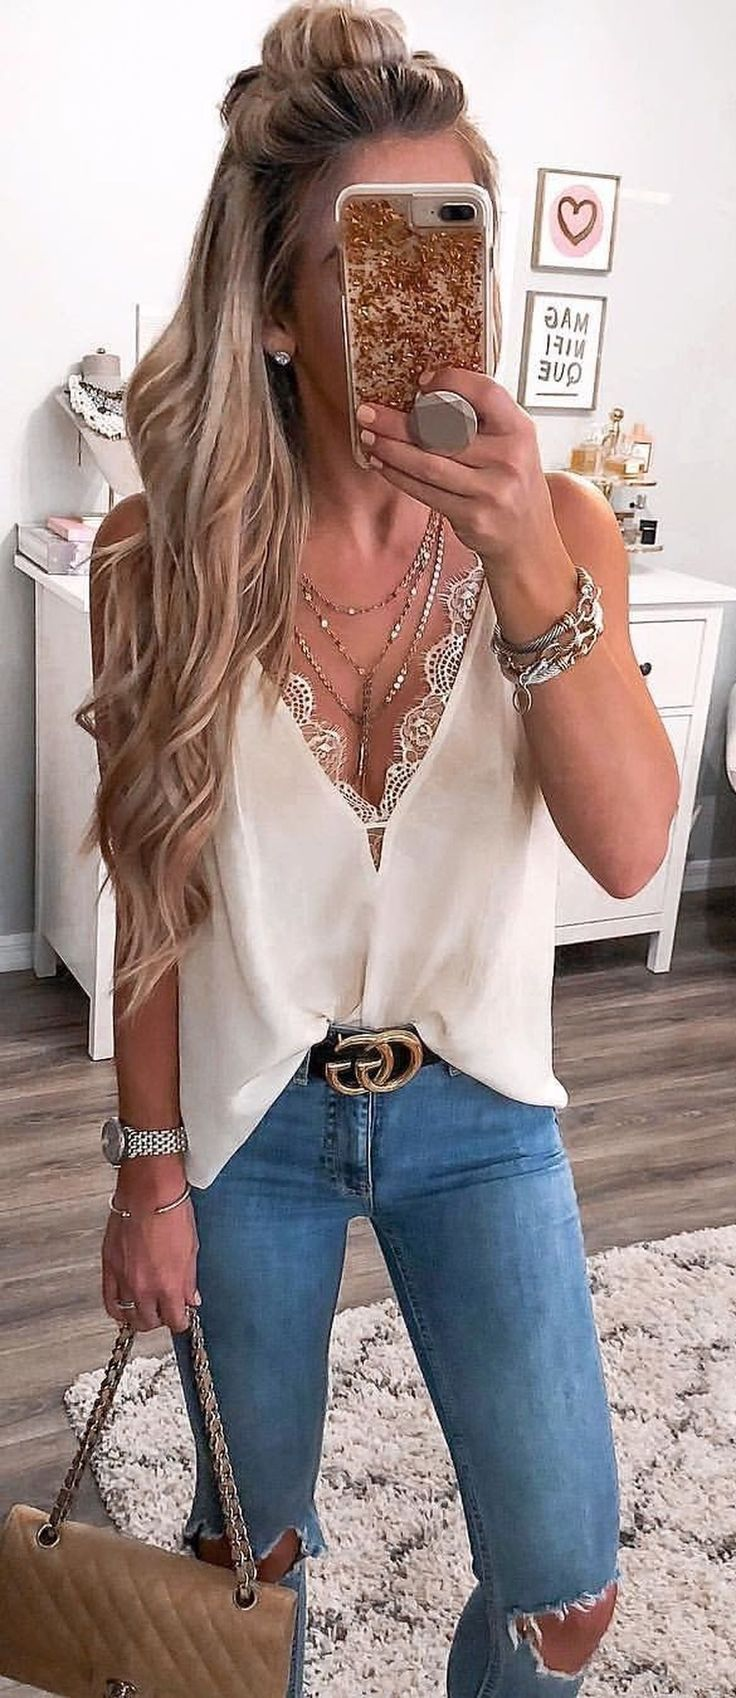 44 Captivating Summer Outfits Ideas To Copy Now